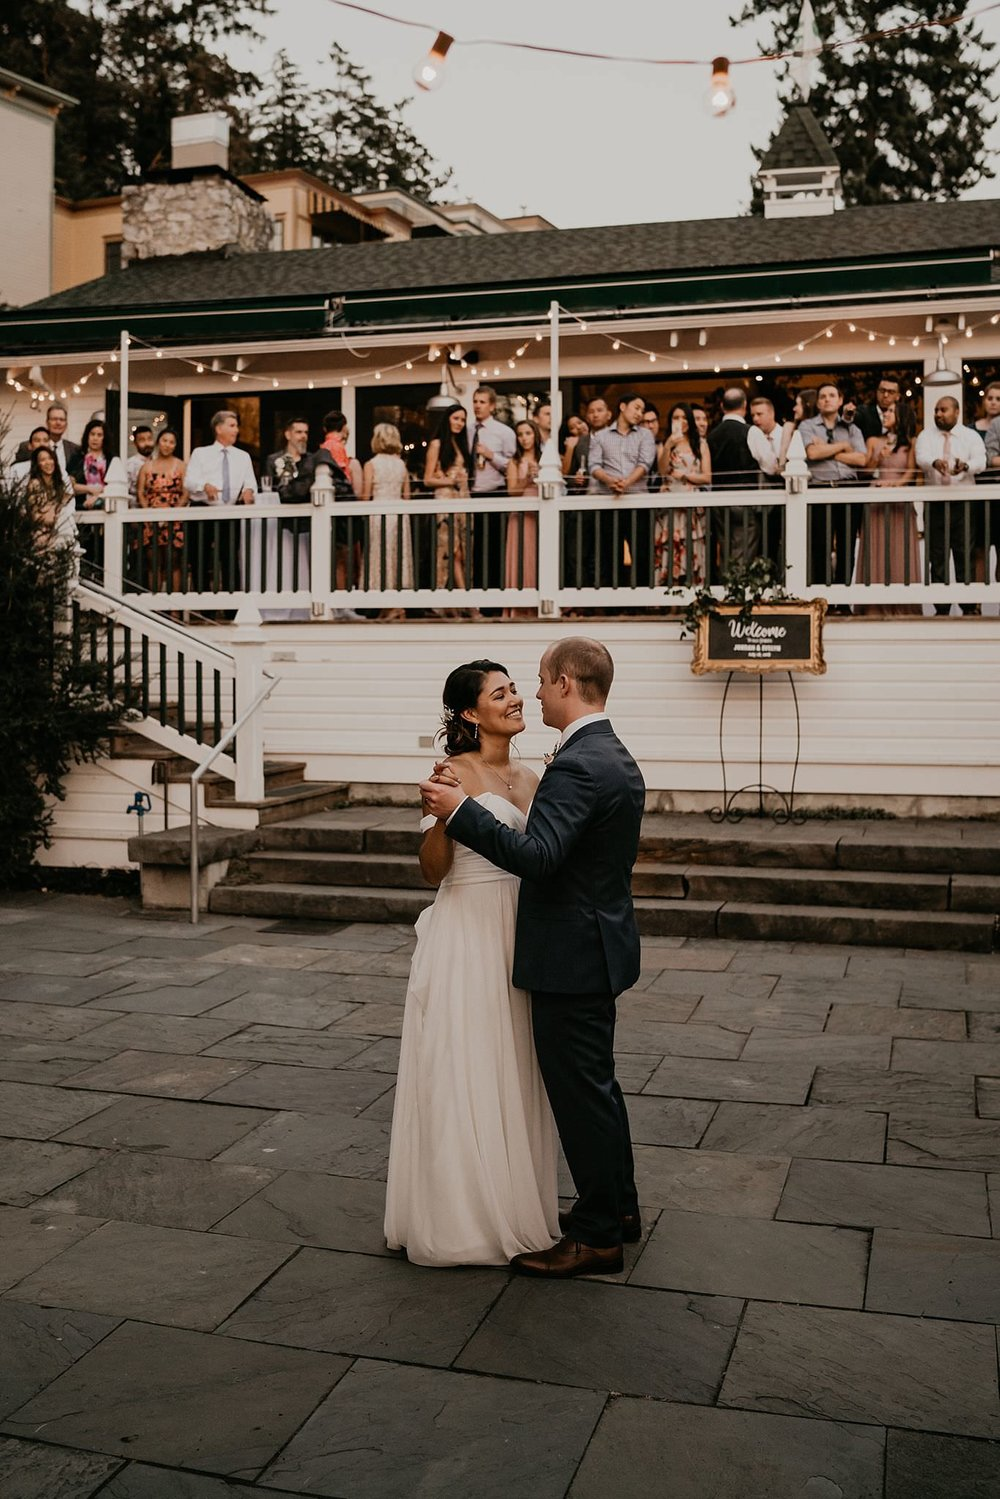 First Dance at Roche Harbor Wedding on San Juan Islands of Washington